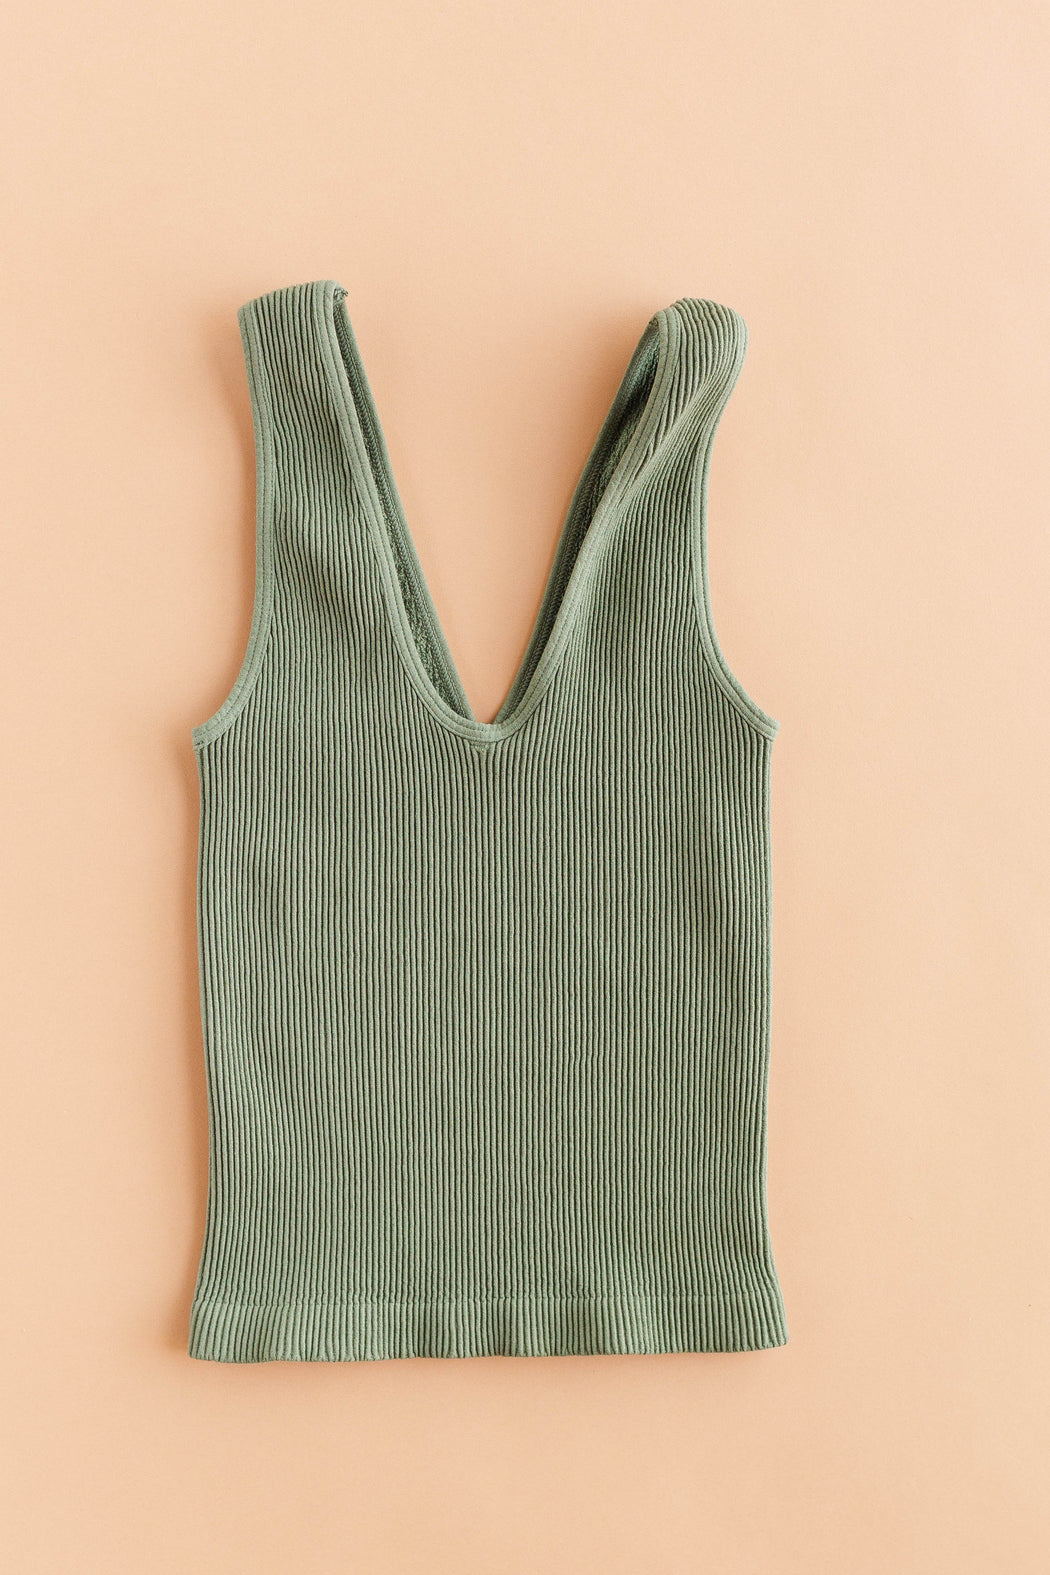 The Leisure Cami